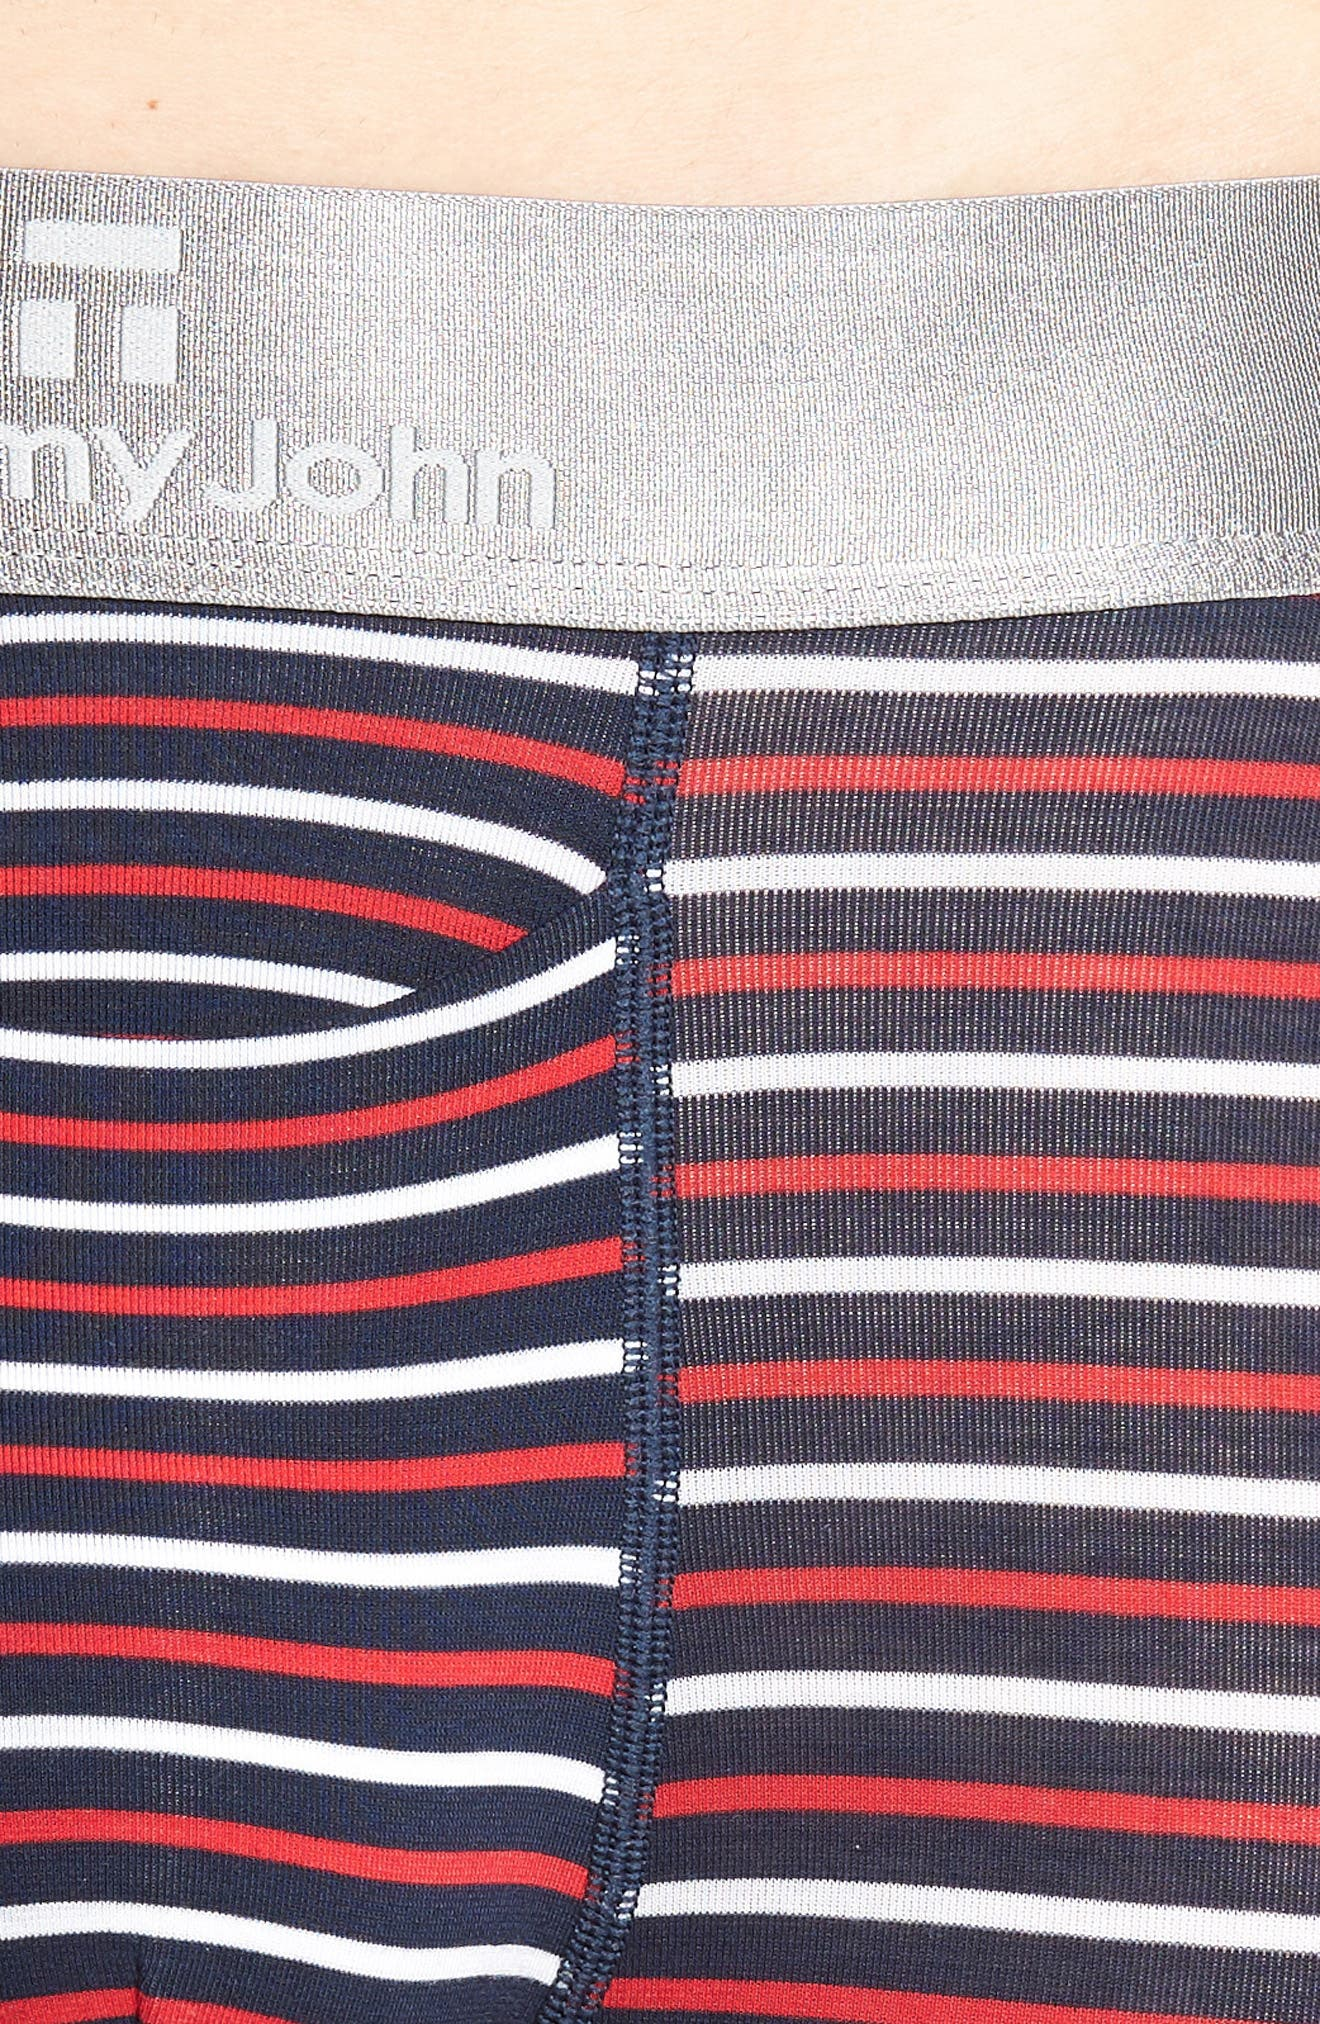 TOMMY JOHN,                             Second Skin Americana Stripe Boxer Briefs,                             Alternate thumbnail 4, color,                             RED/ WHITE/ DRESS BLUES